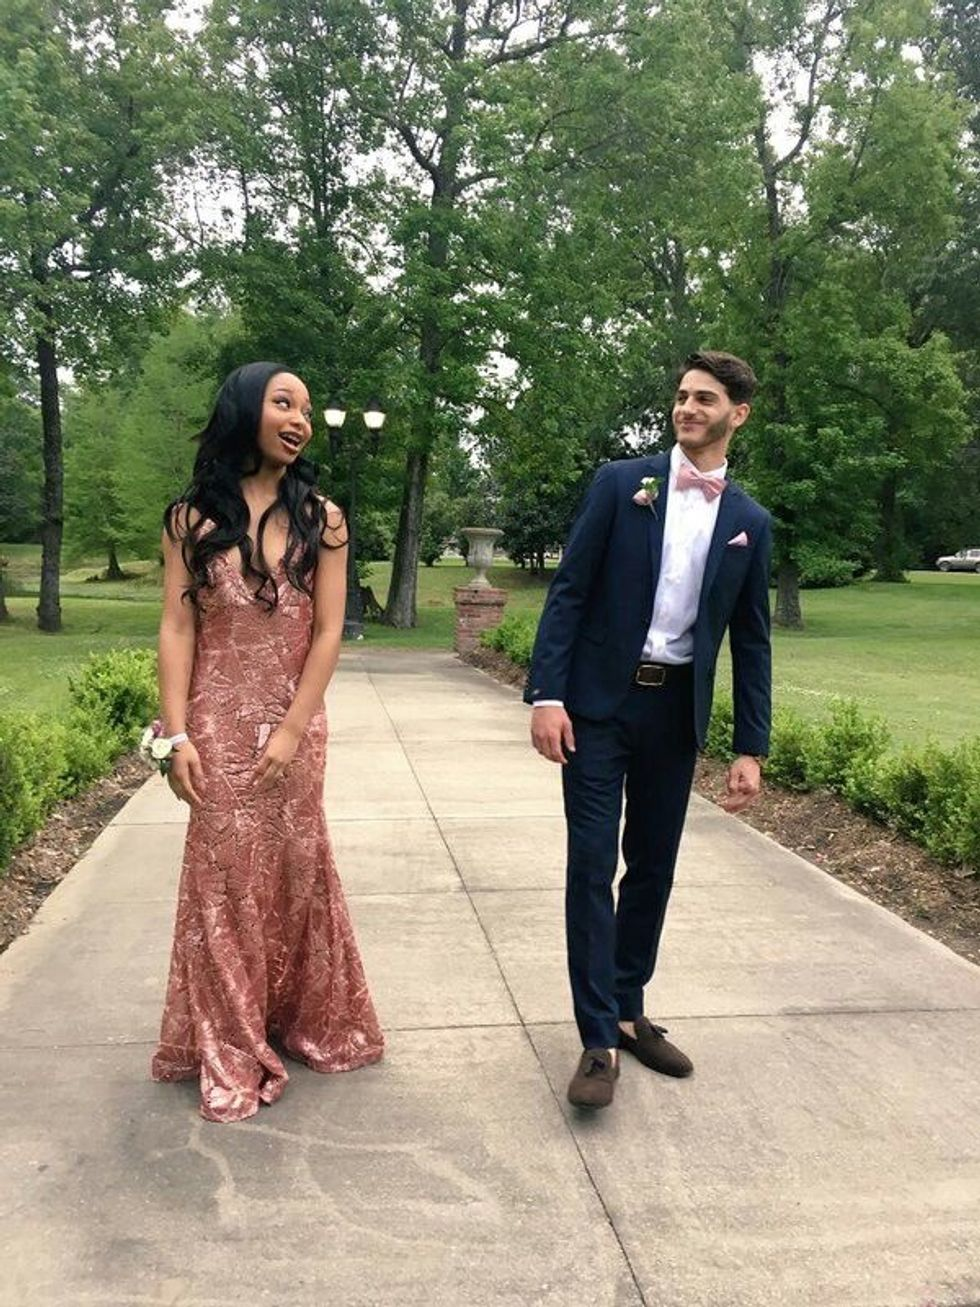 30 Things Every Girl MUST Do Leading Up To Prom